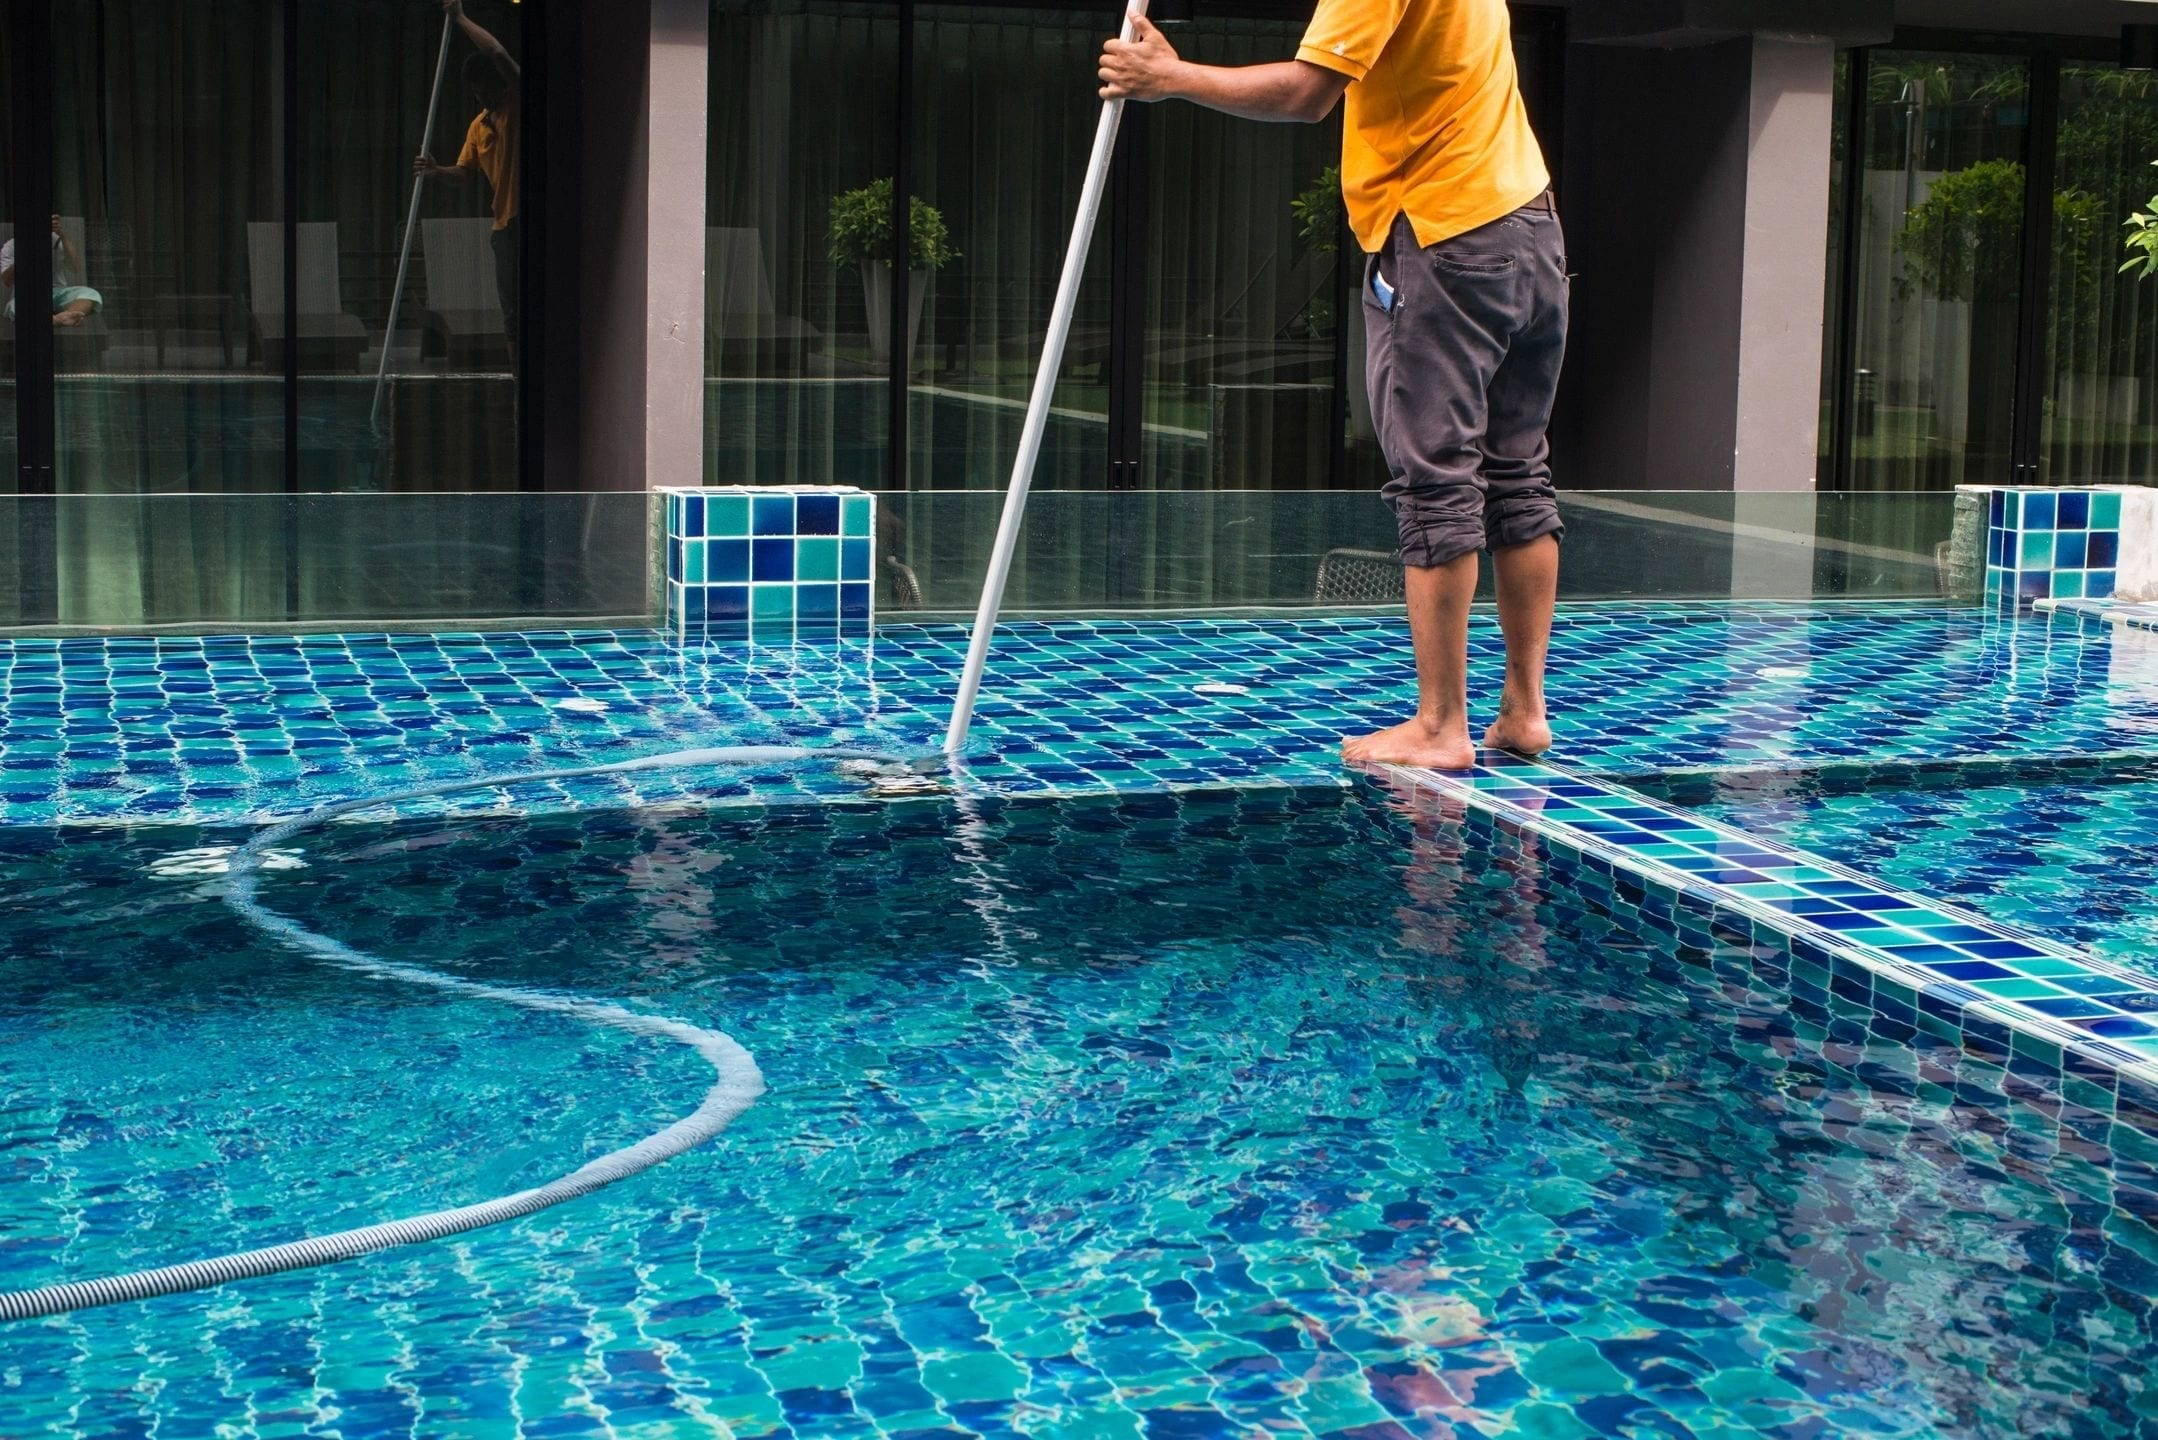 Pool cleaning - Acquality Pool Service